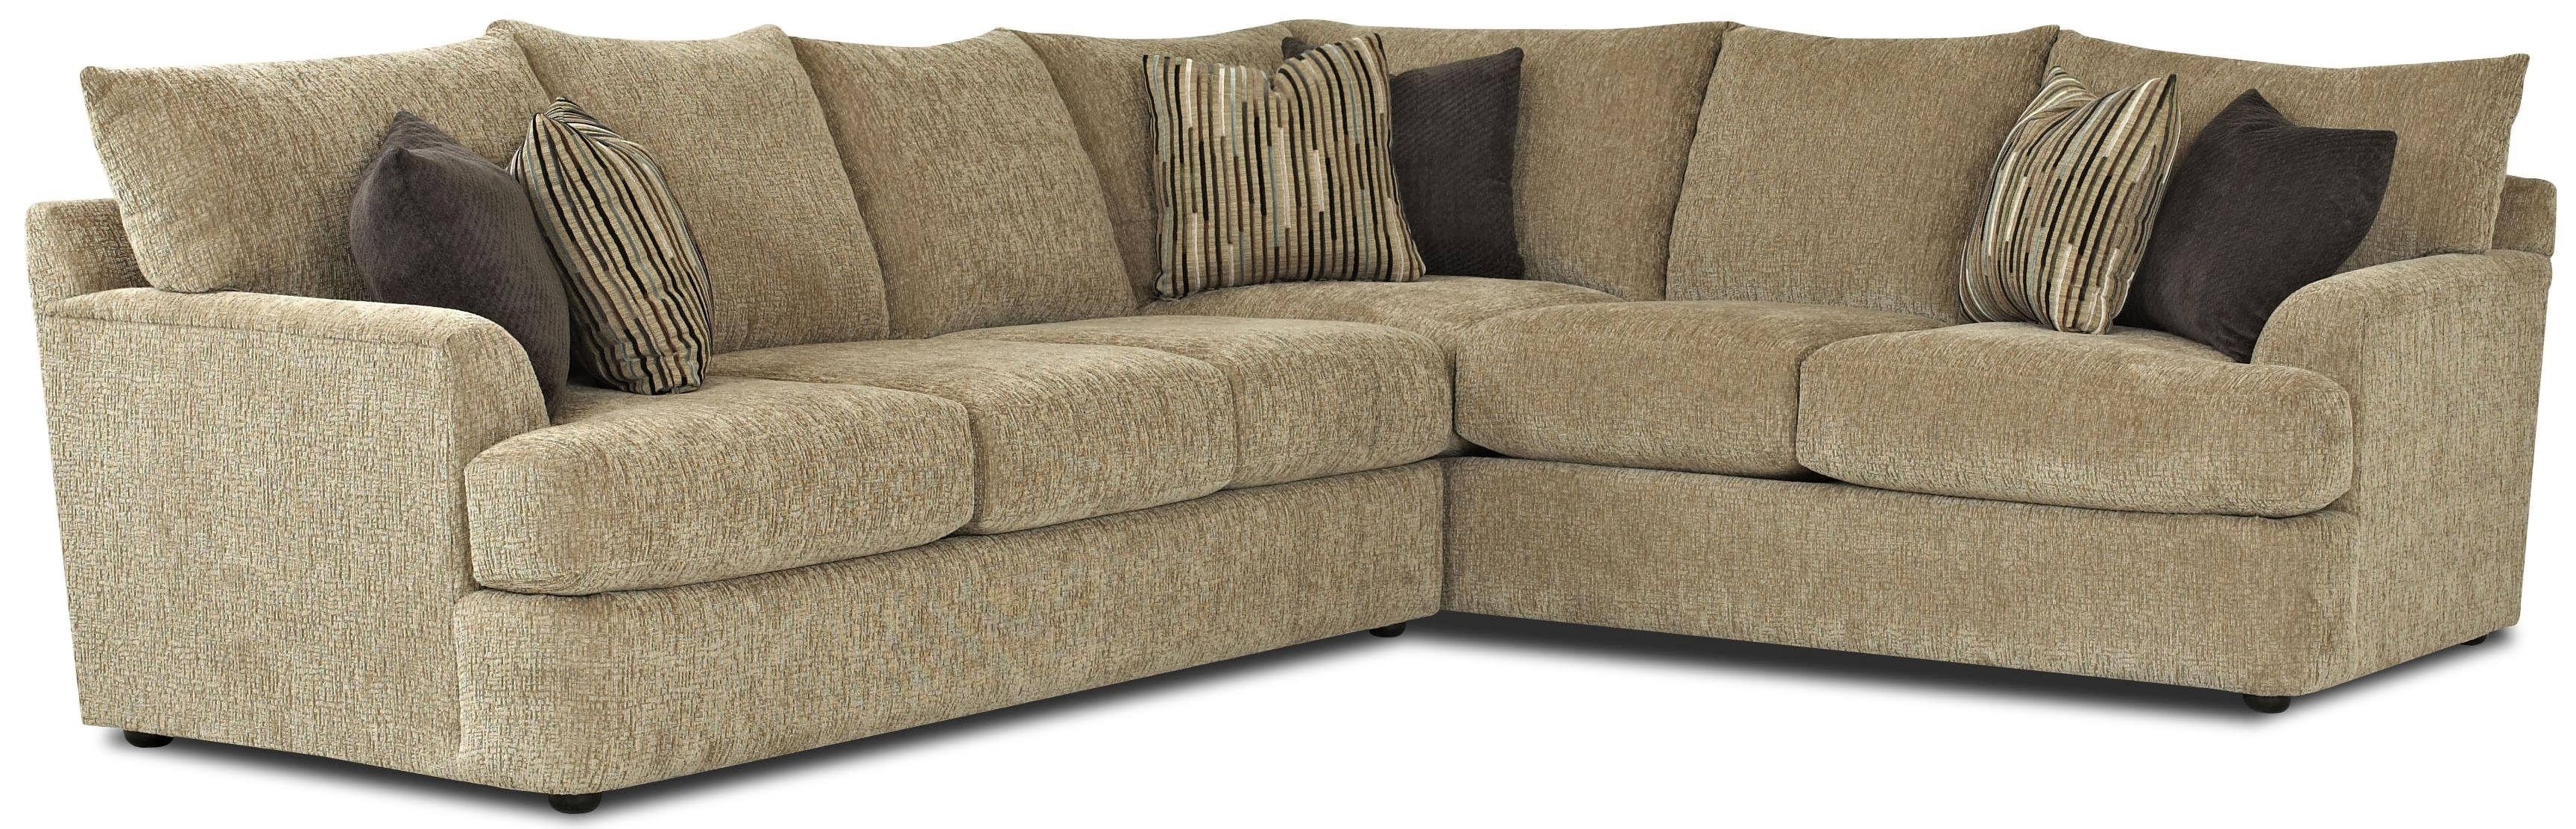 Current Sofa : Deep Couches Sectional Sofas With Recliners Fold Out Couch Intended For L Shaped Sectionals With Chaise (View 8 of 15)